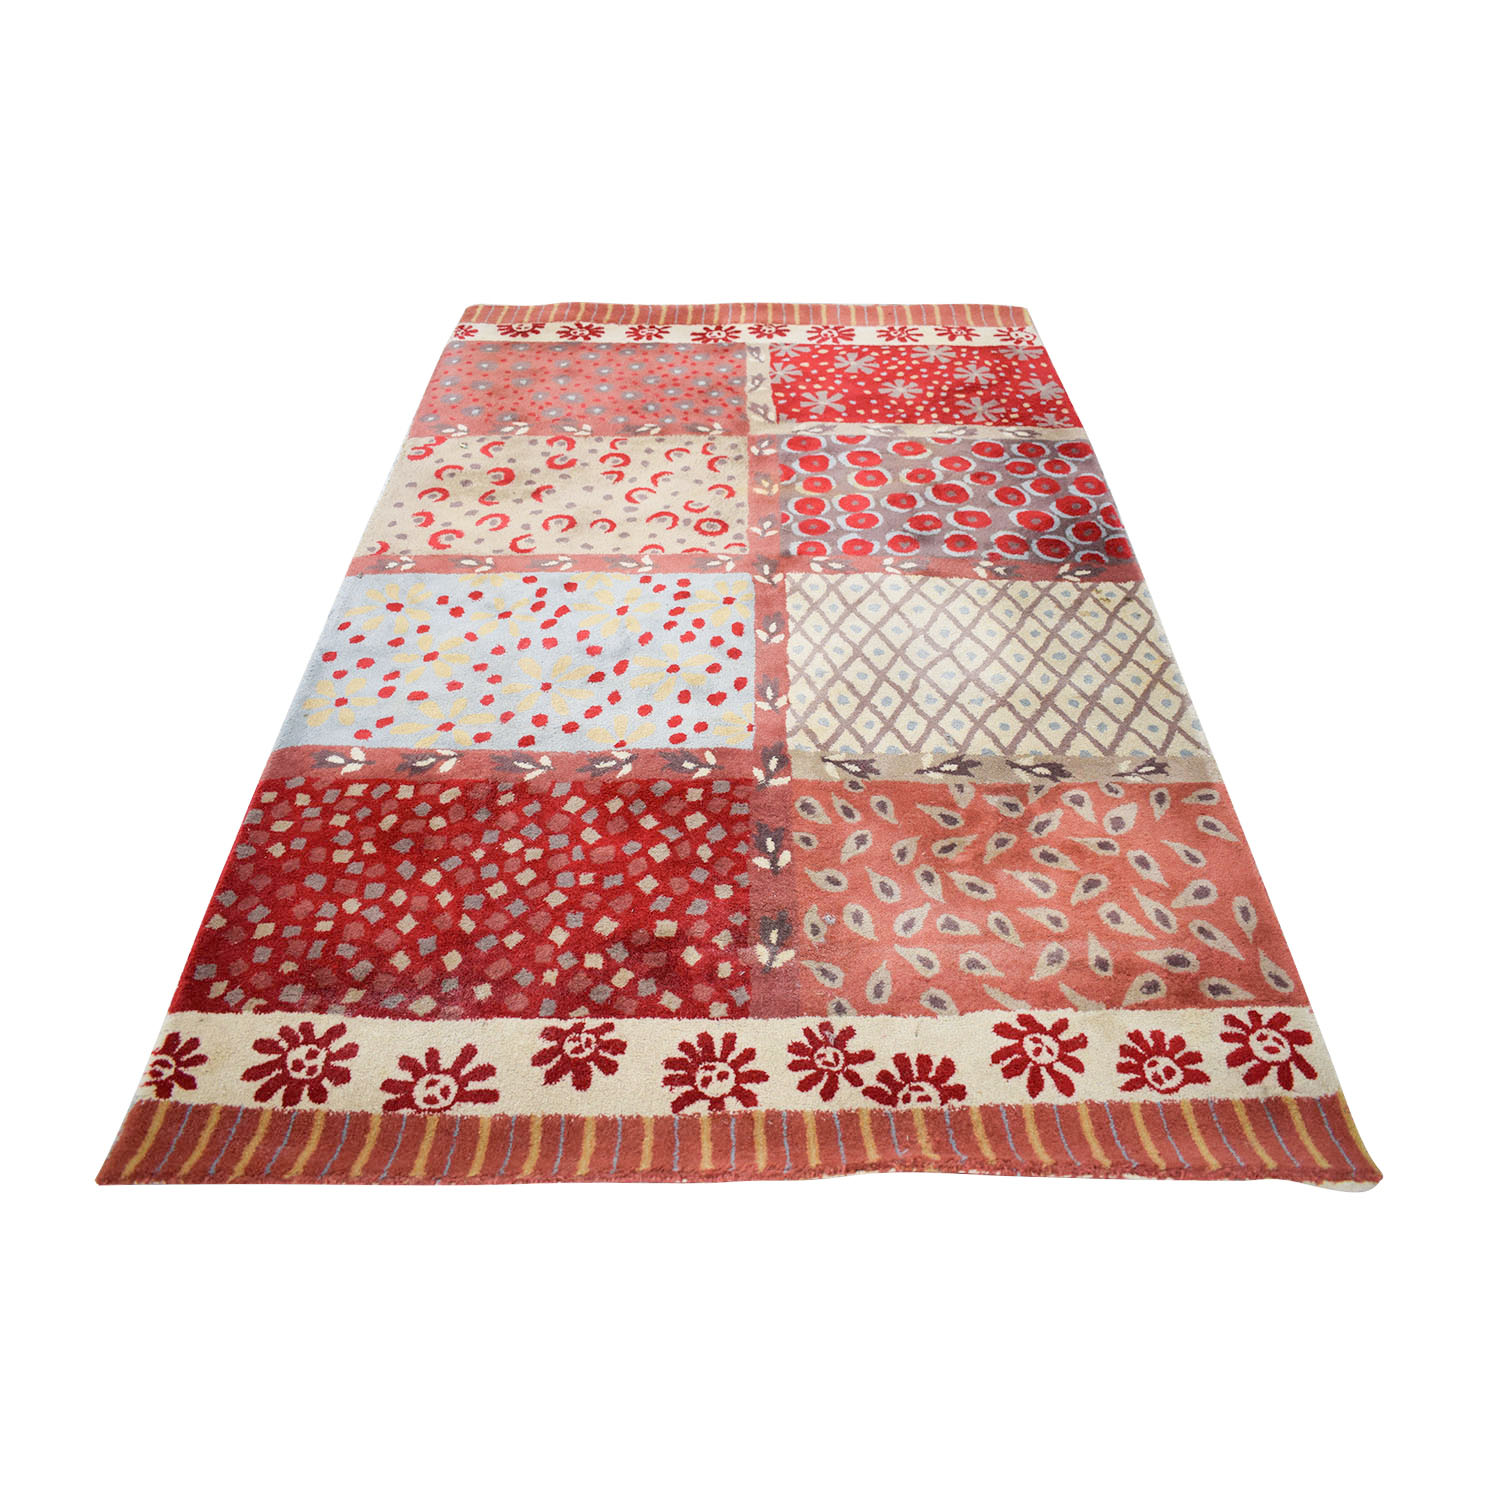 Pottery Barn Pottery Barn Red Multi-Colored Rug coupon